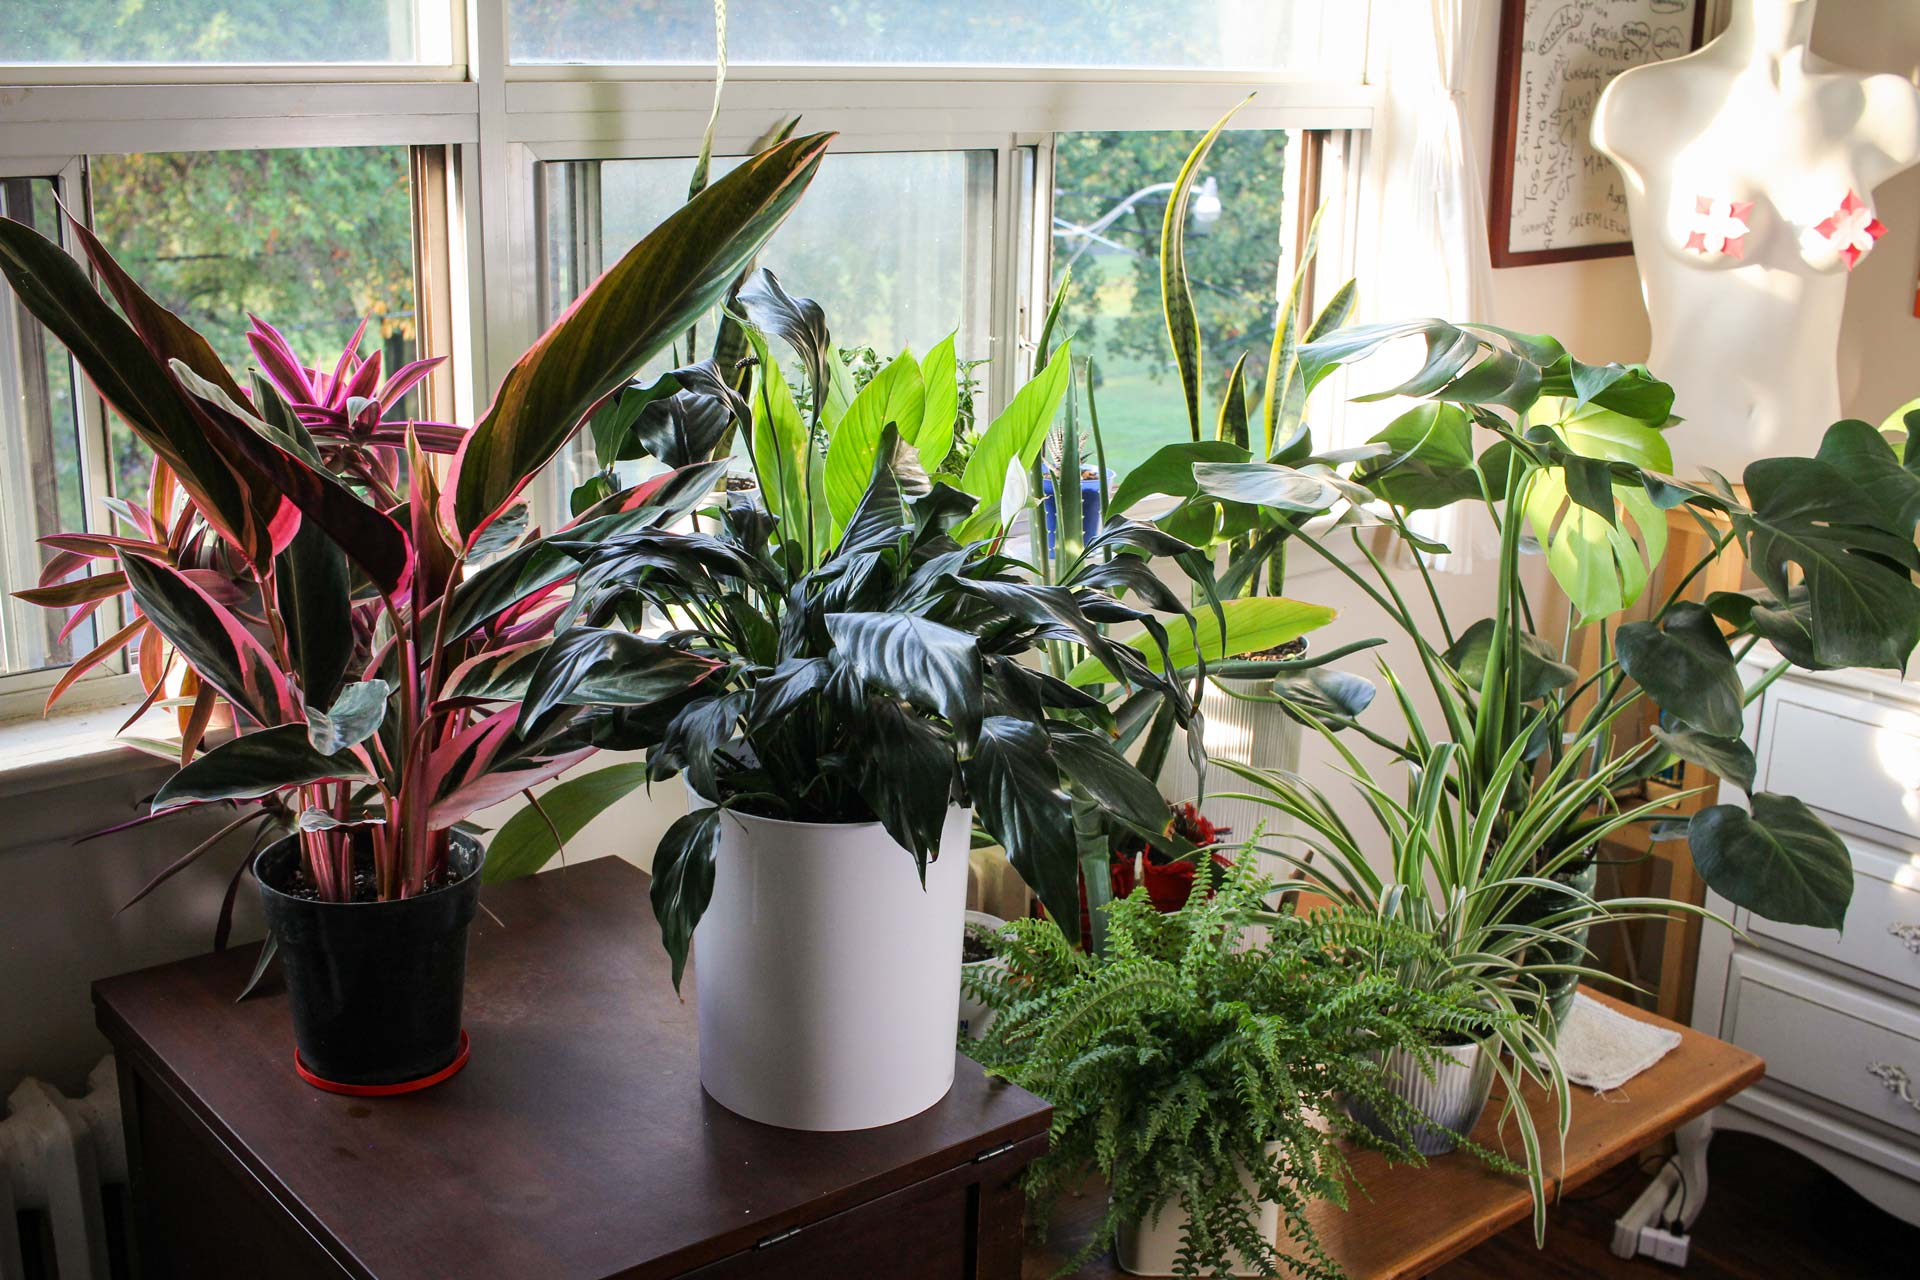 Houseplants in the morning sun